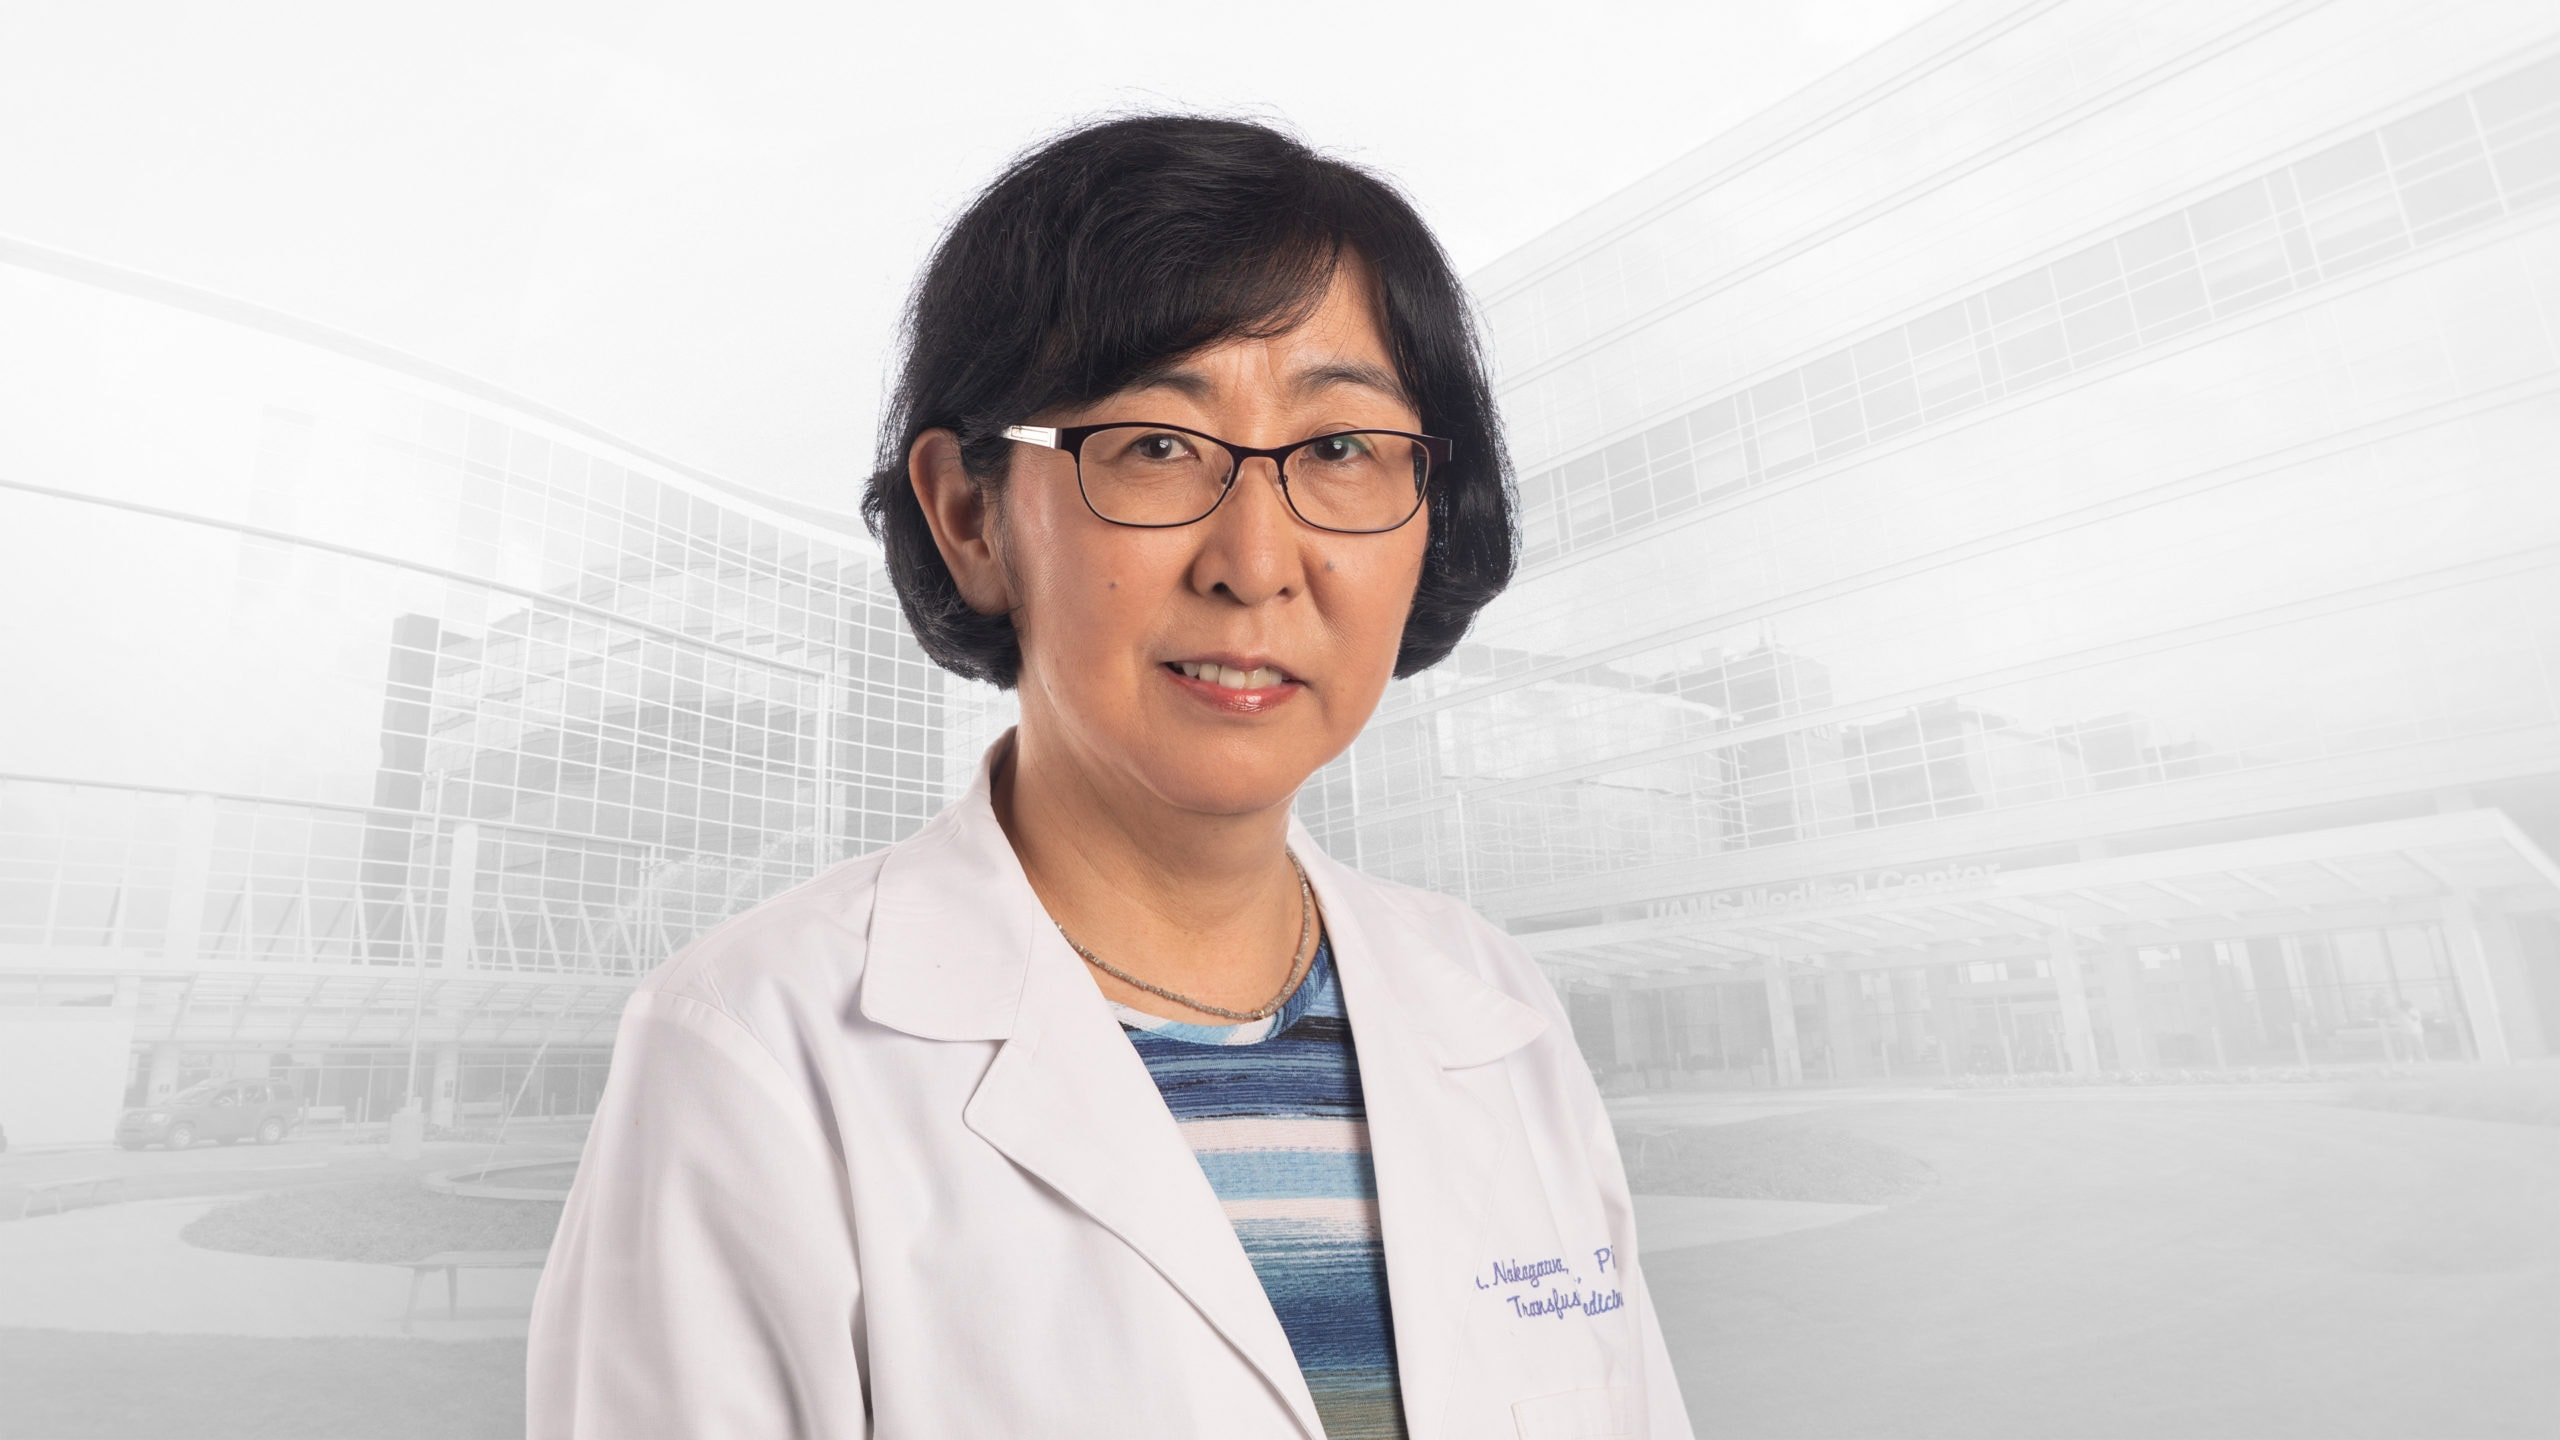 Dr. Mayumi Nakagawa - With an additional $3.6 million from the National Institutes of Health, Mayumi Nakagawa's, M.D., Ph.D., ground-breaking HPV vaccine research tops $10 million.